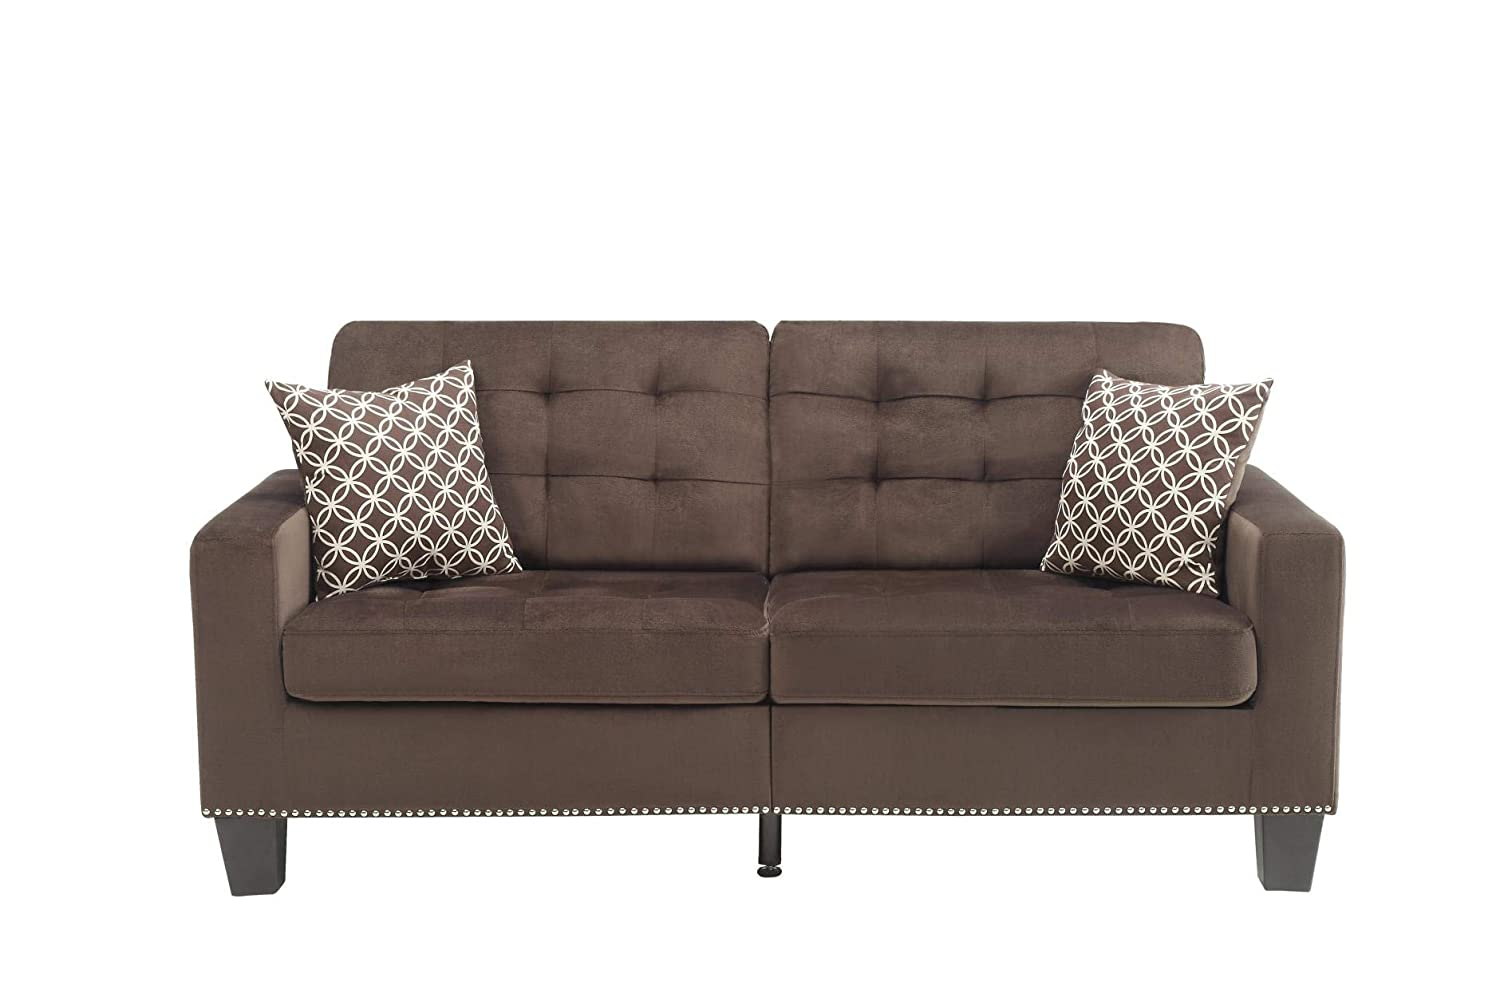 Amazon.com: Benzara BM180174 Fabric Upholstered Sofa, Brown ...